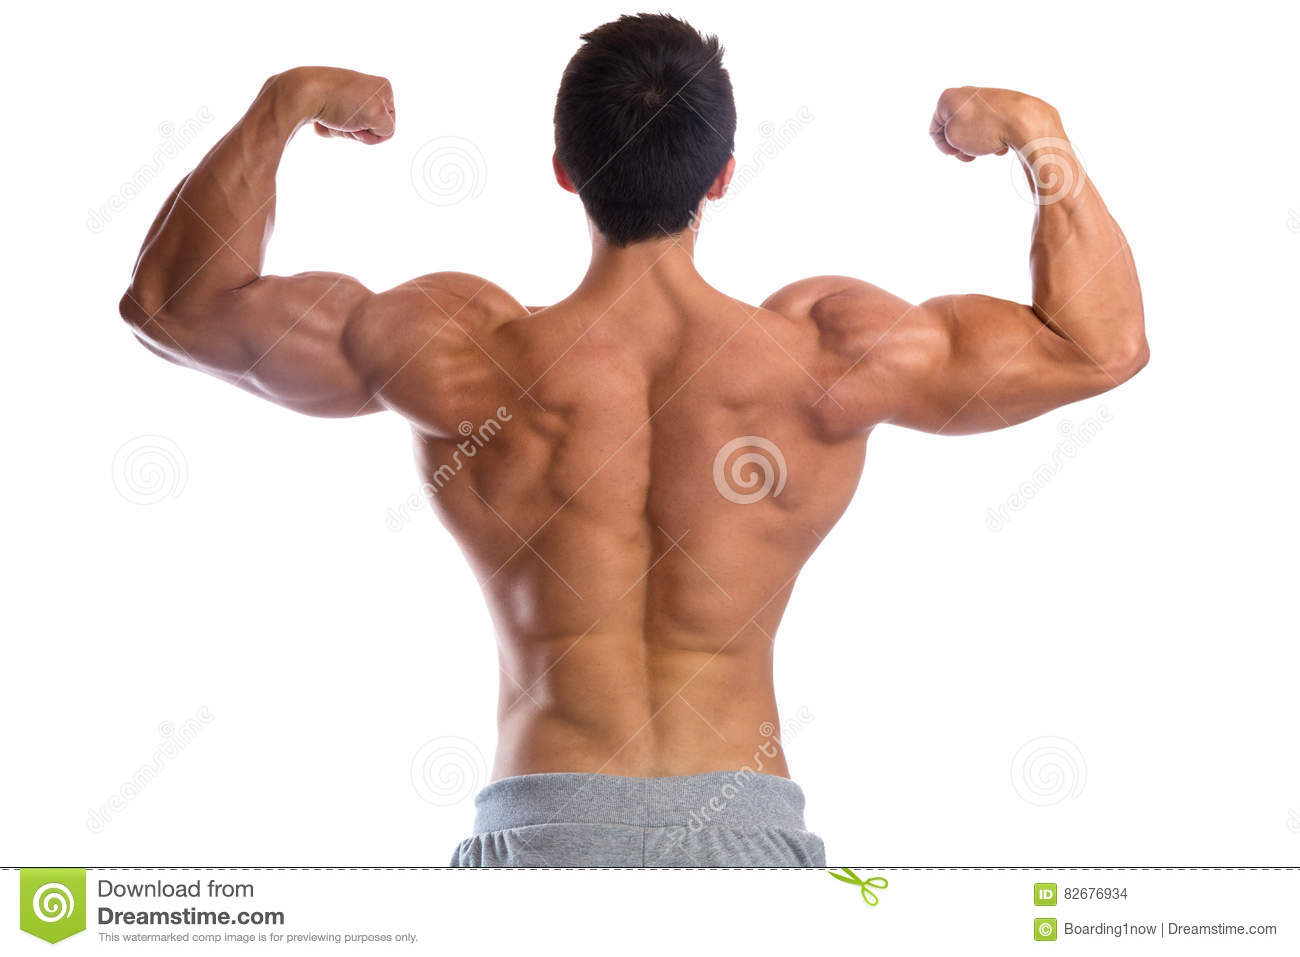 Bodybuilder Bodybuilding Muscles Body Builder Building Back Bice